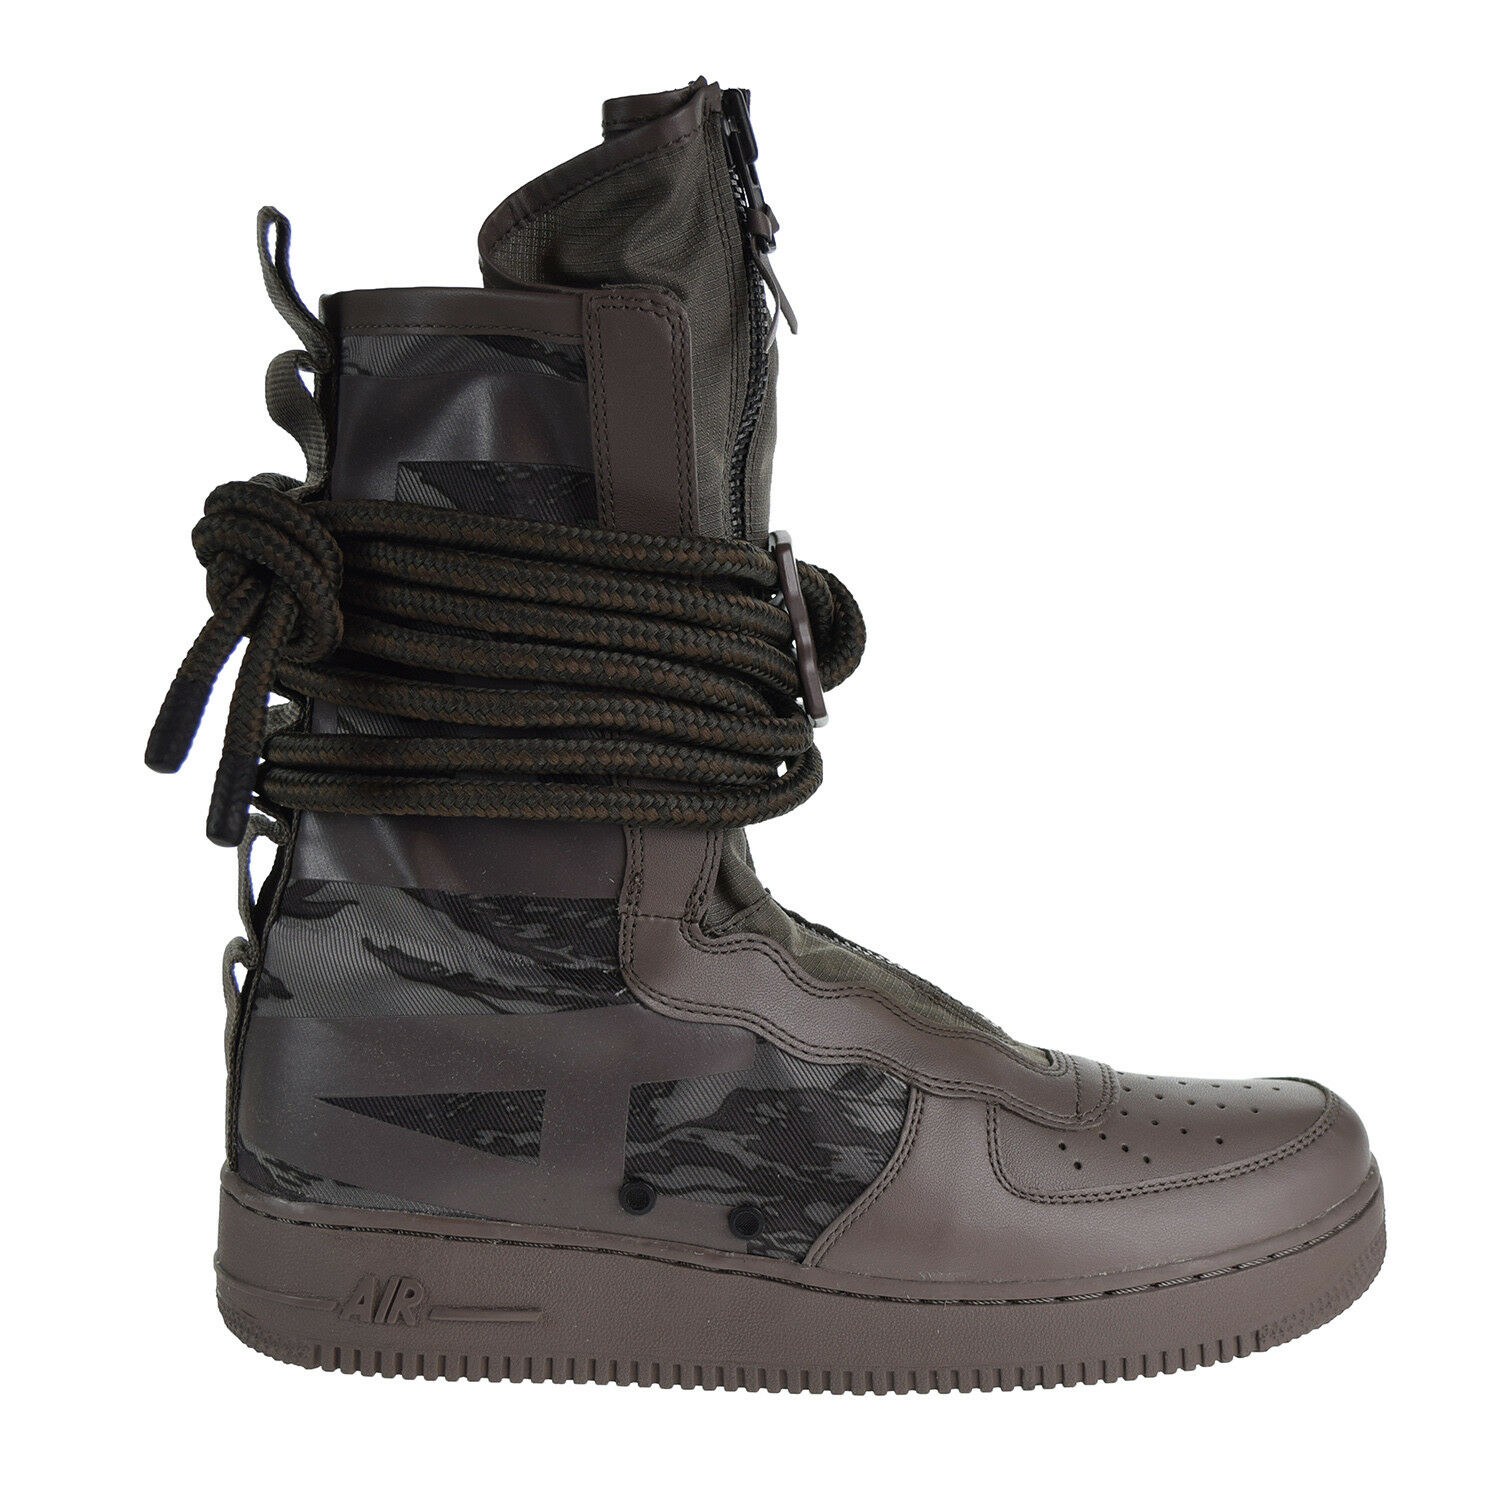 Nike SF AF1 HI Men's Shoes Ridgerock/Black/Sequoia AA1128-203